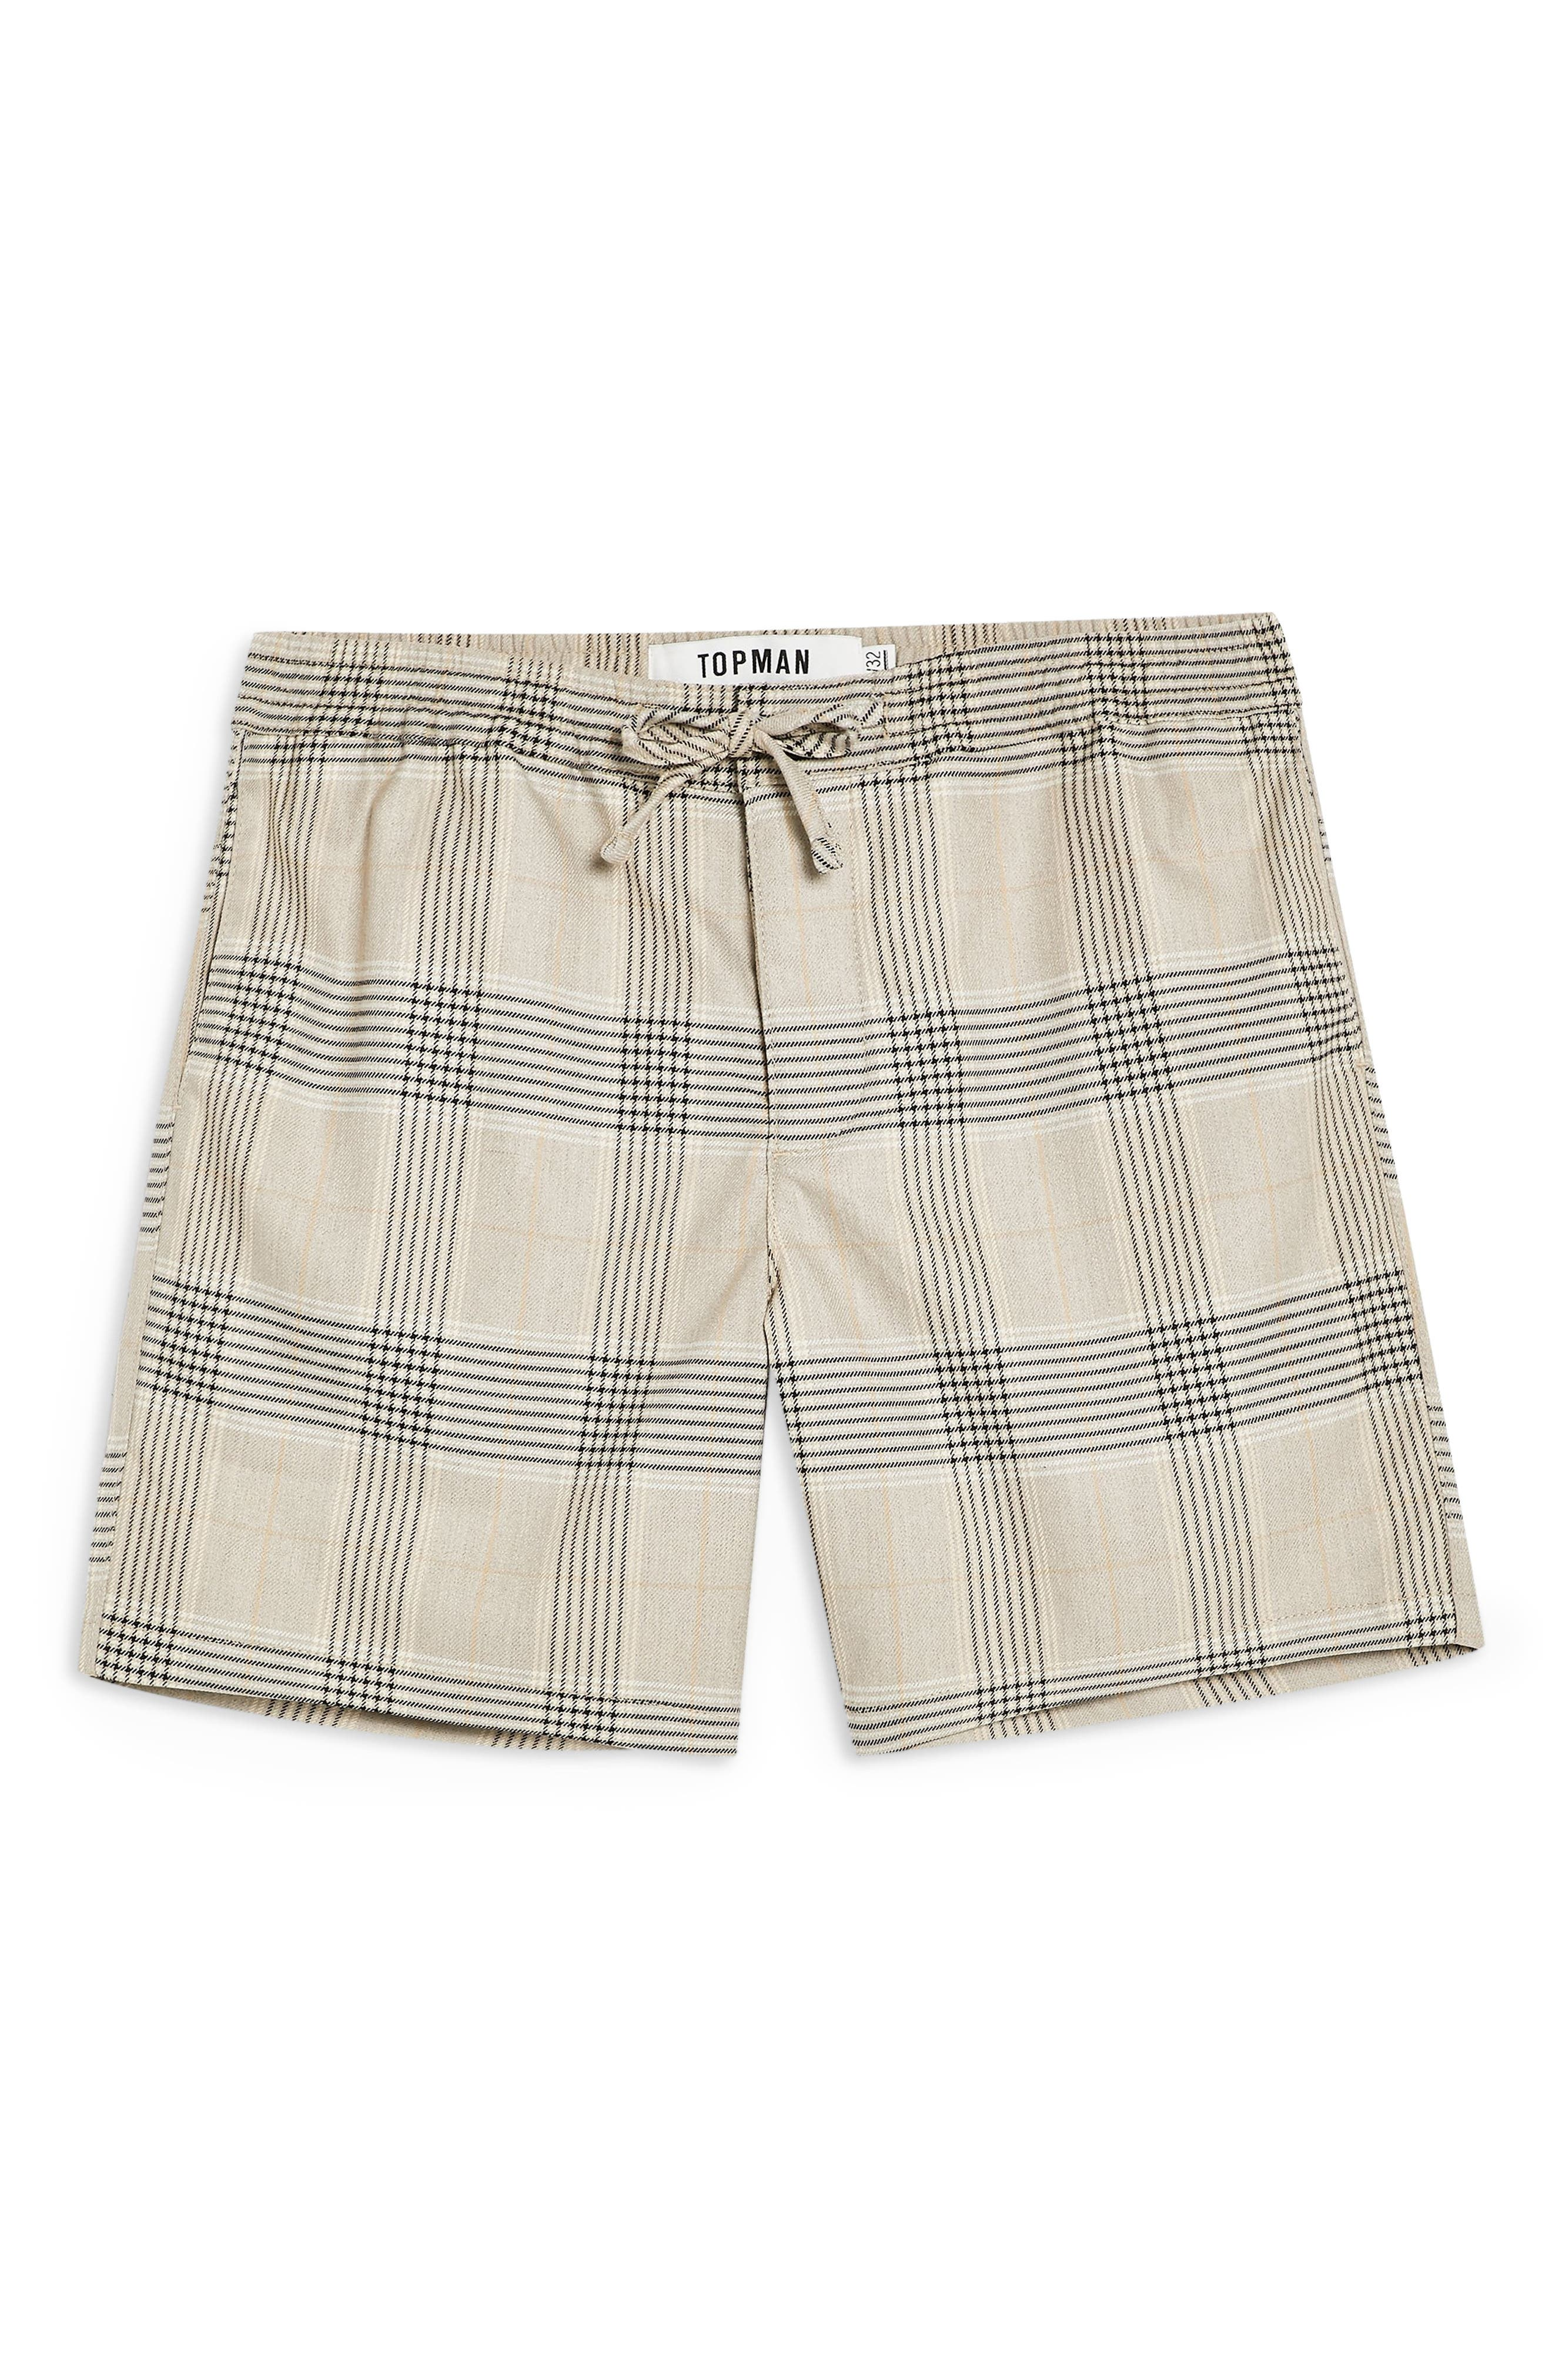 TOPMAN, Check Print Shorts, Alternate thumbnail 4, color, STONE